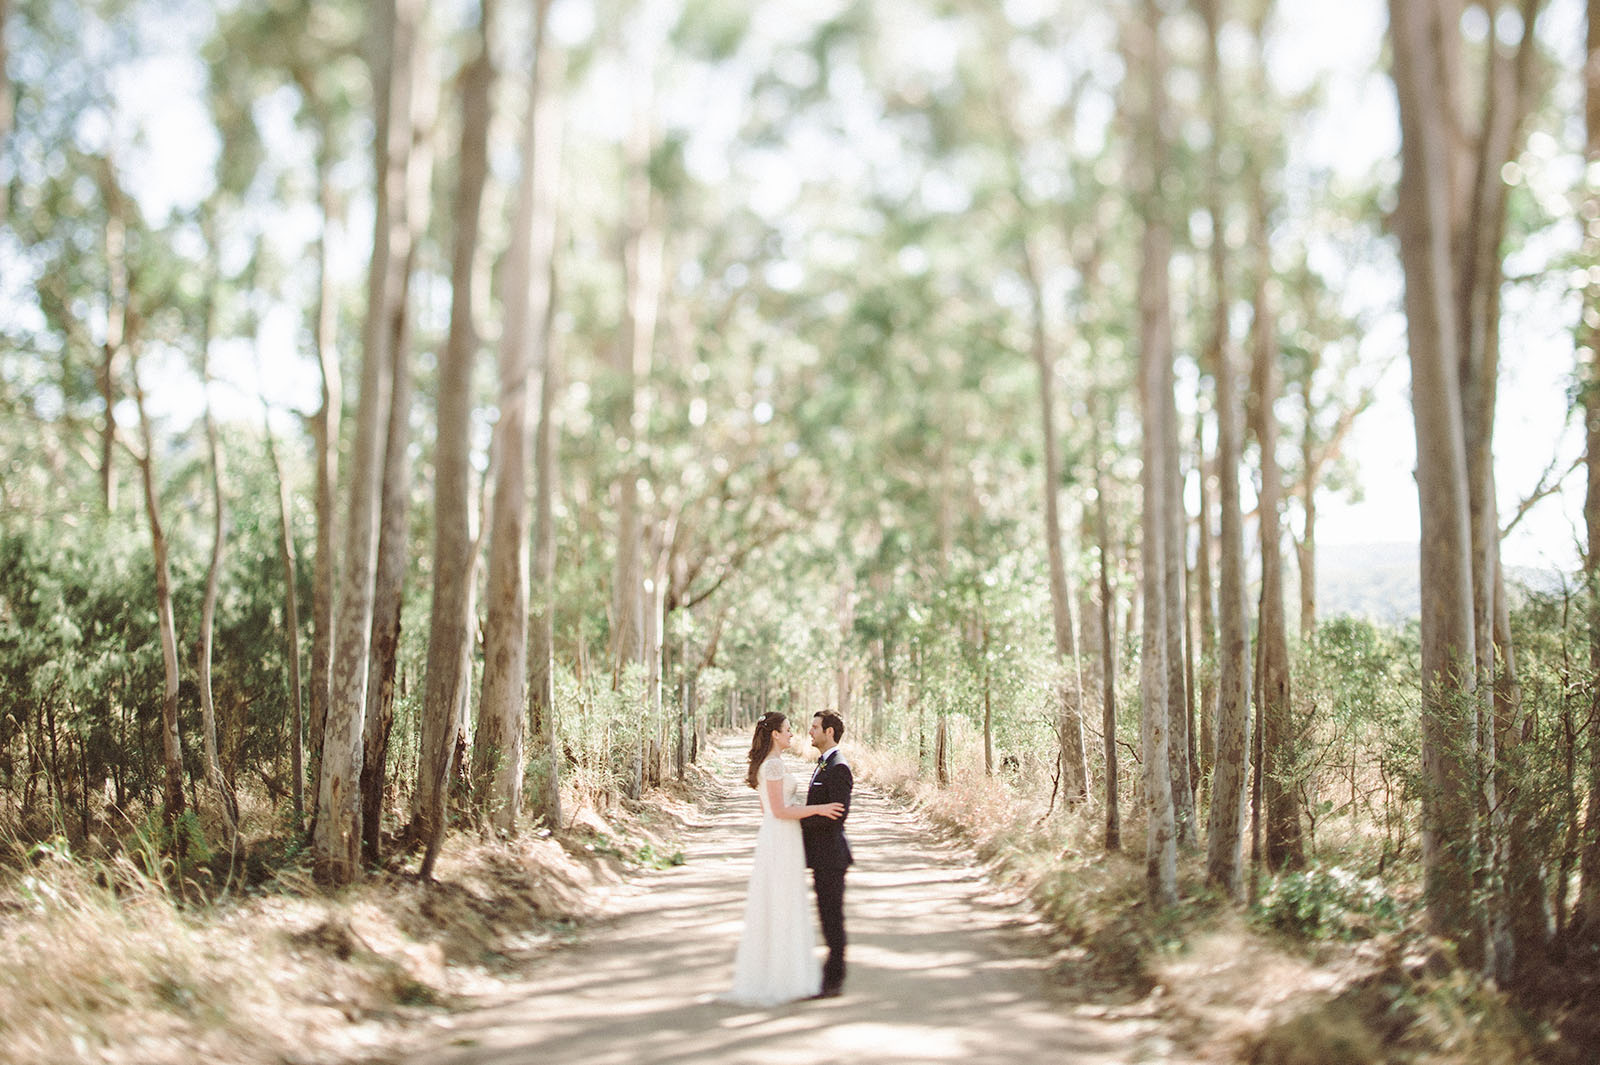 tilt shift wedding photograph